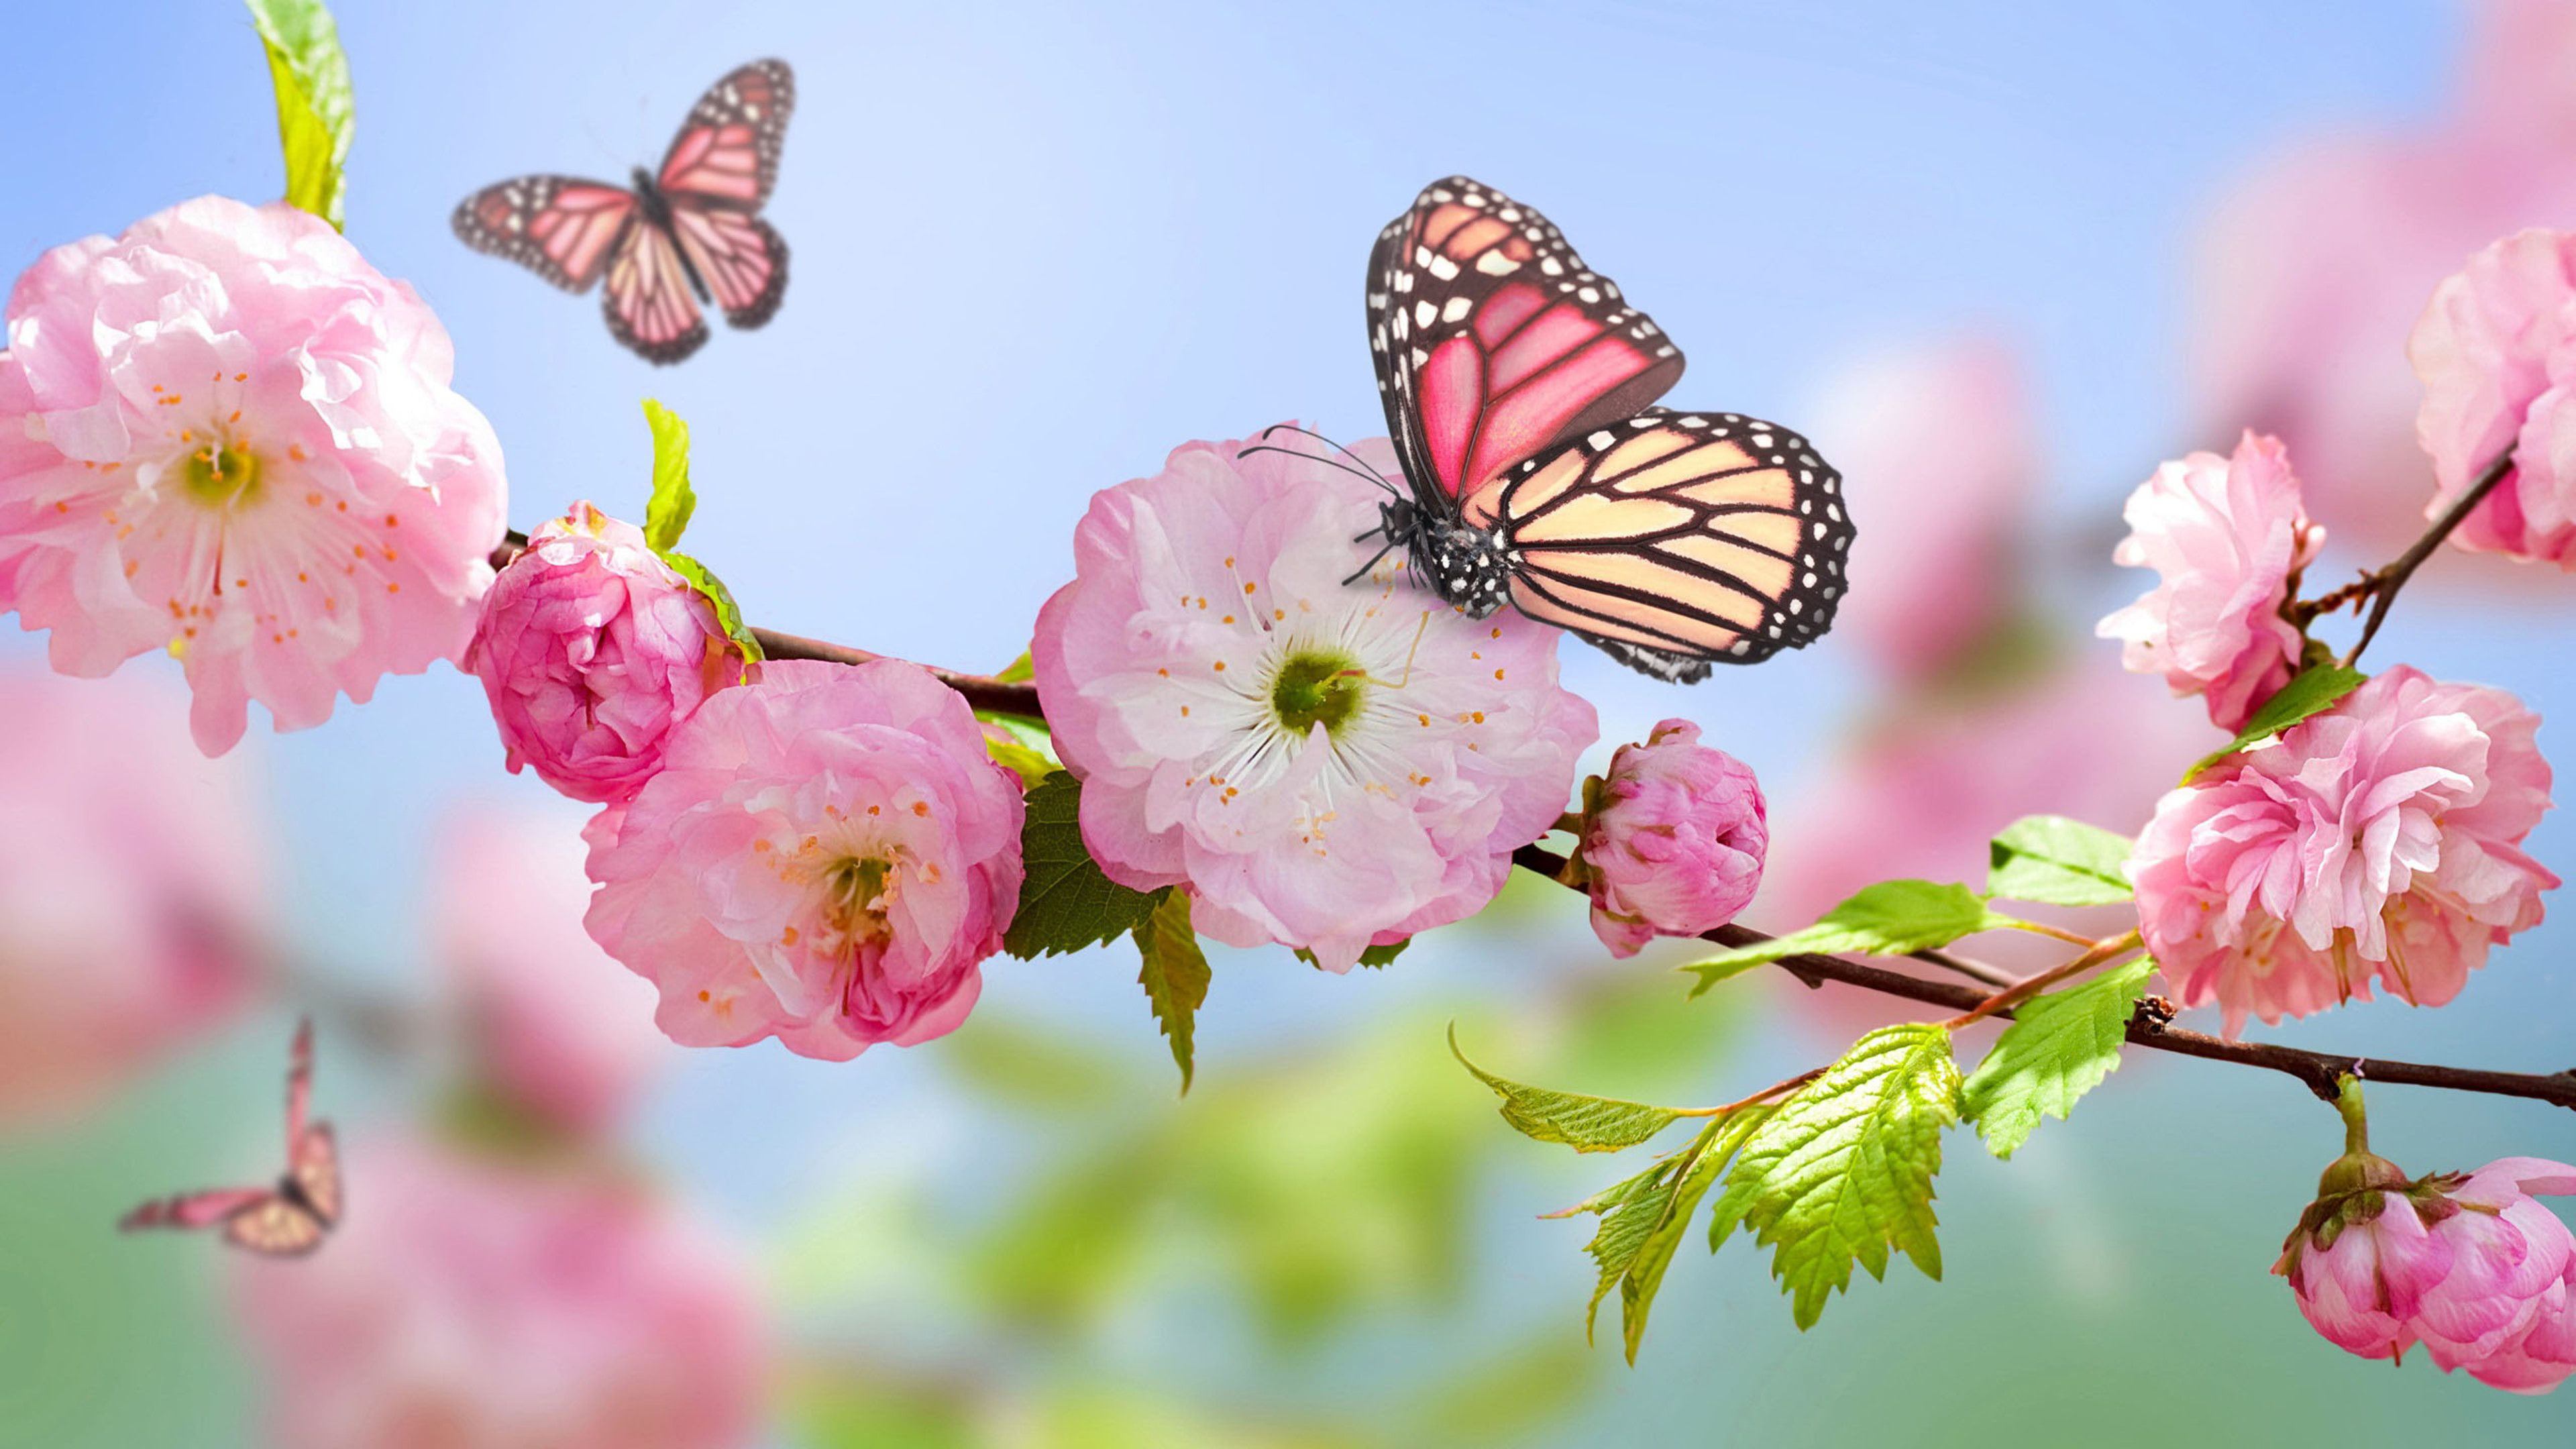 Wallpaper Download 3840x2160 Pink Butterfly On The Blossom Trees Wonderful Macro Wallpapers Download Spring Wallpaper Butterfly Wallpaper Flower Wallpaper